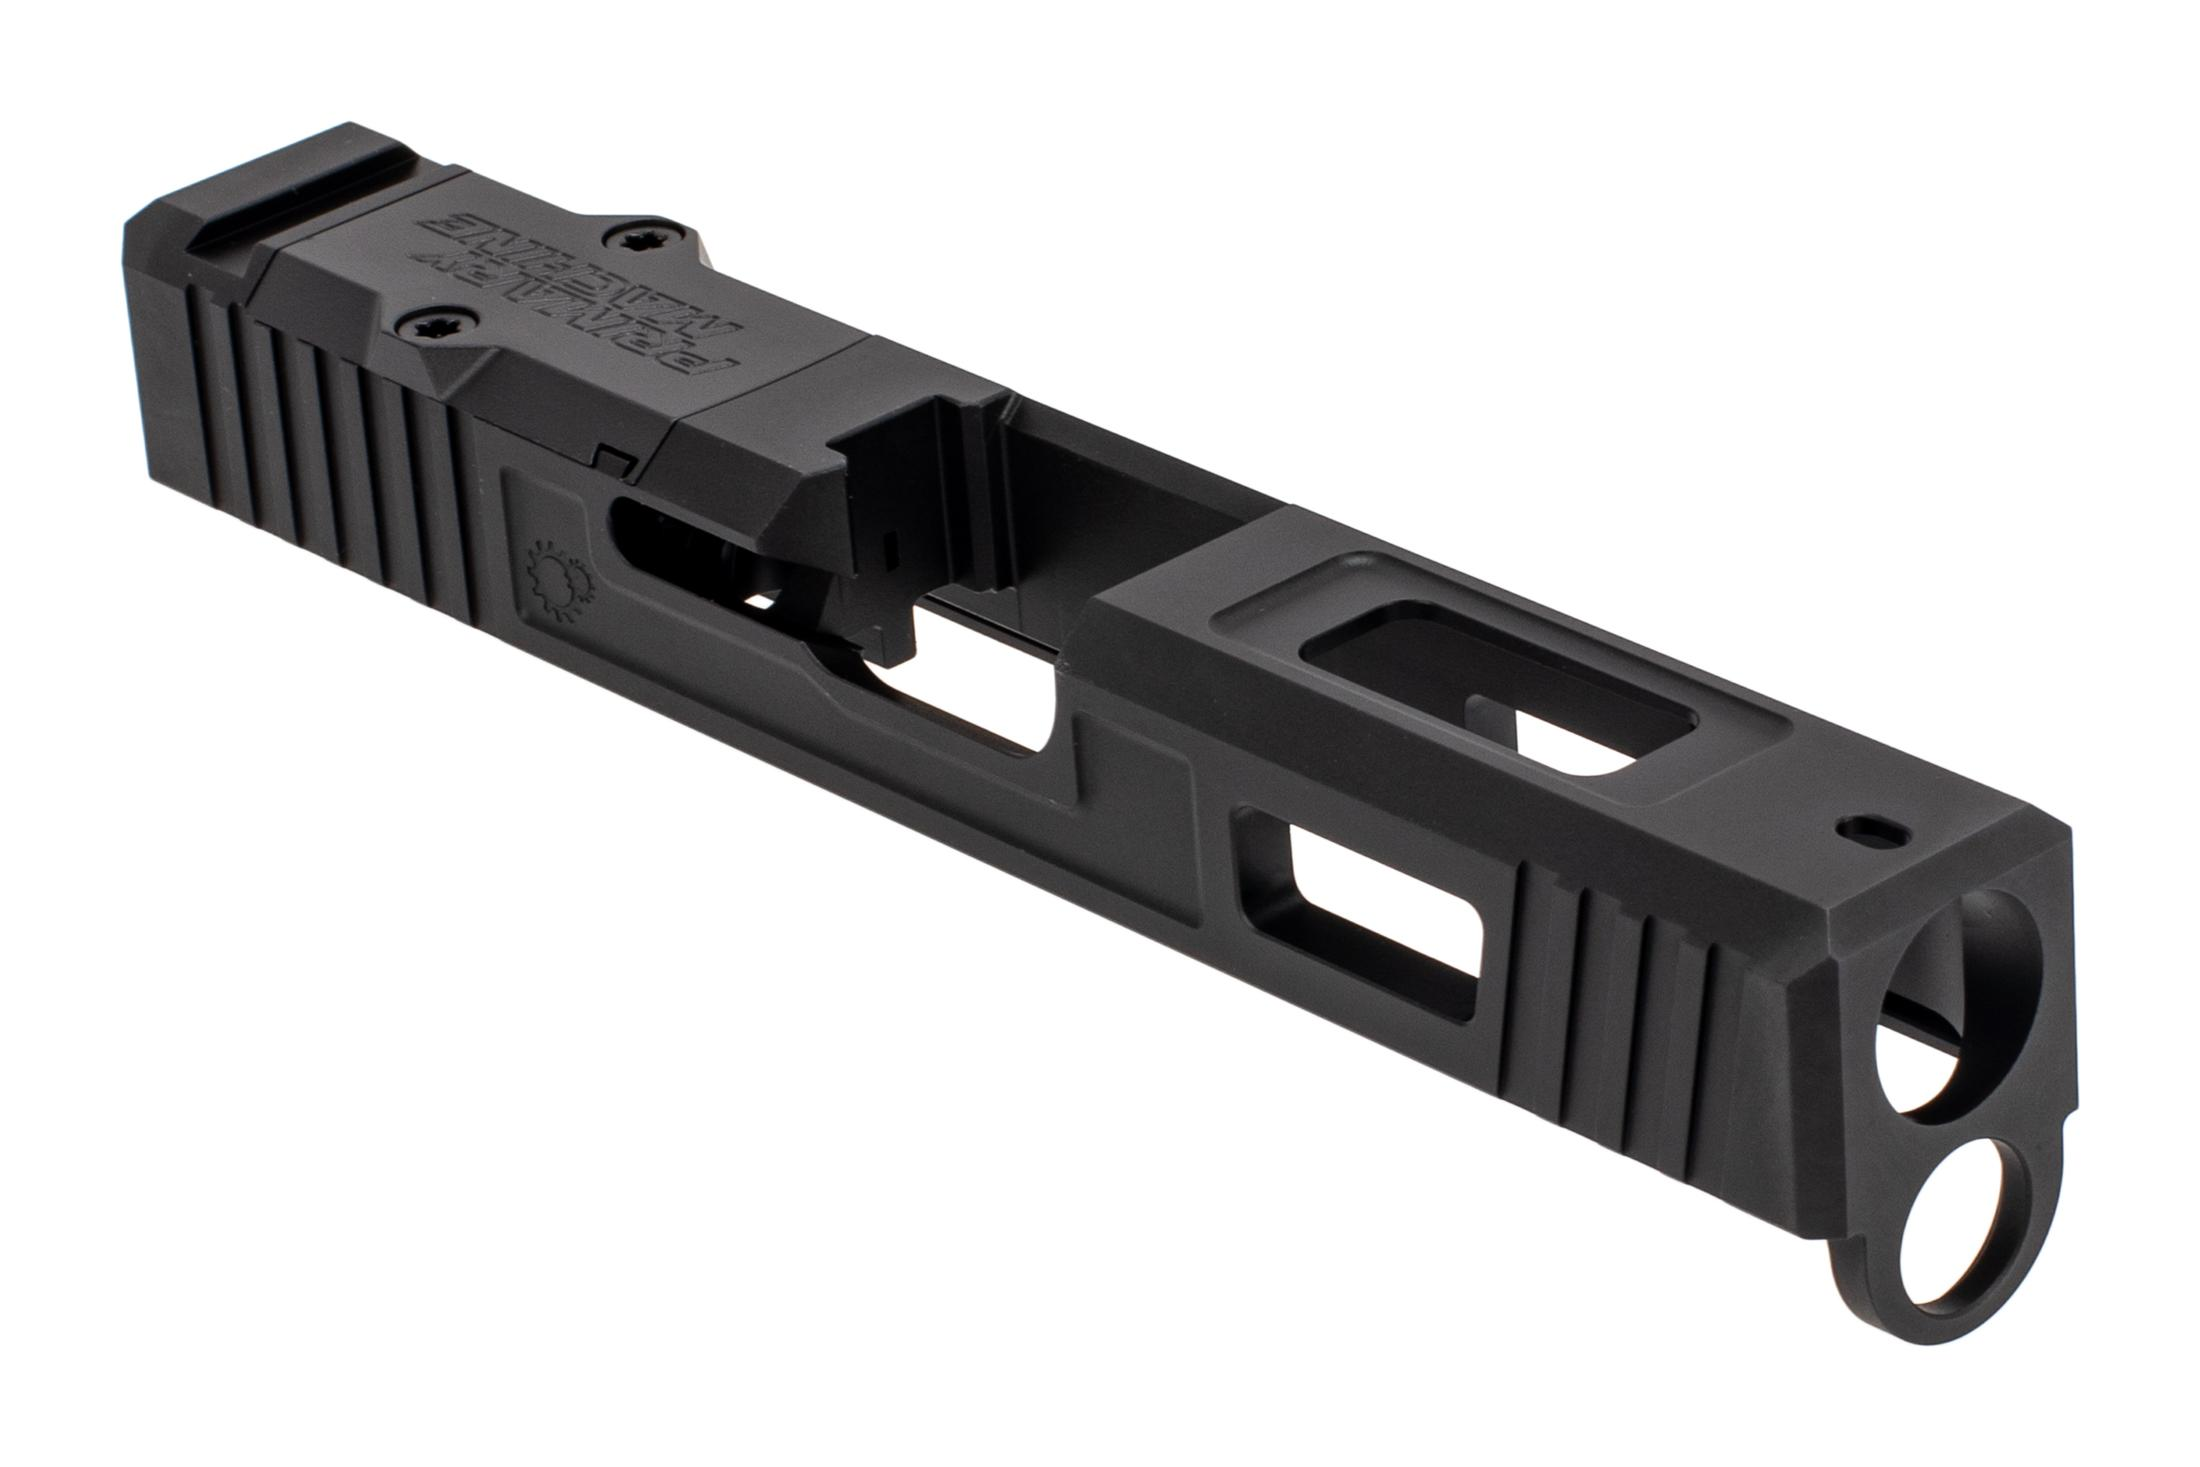 The Primary Machine Glock 19 slide features the UCC V3 weight reducing cuts